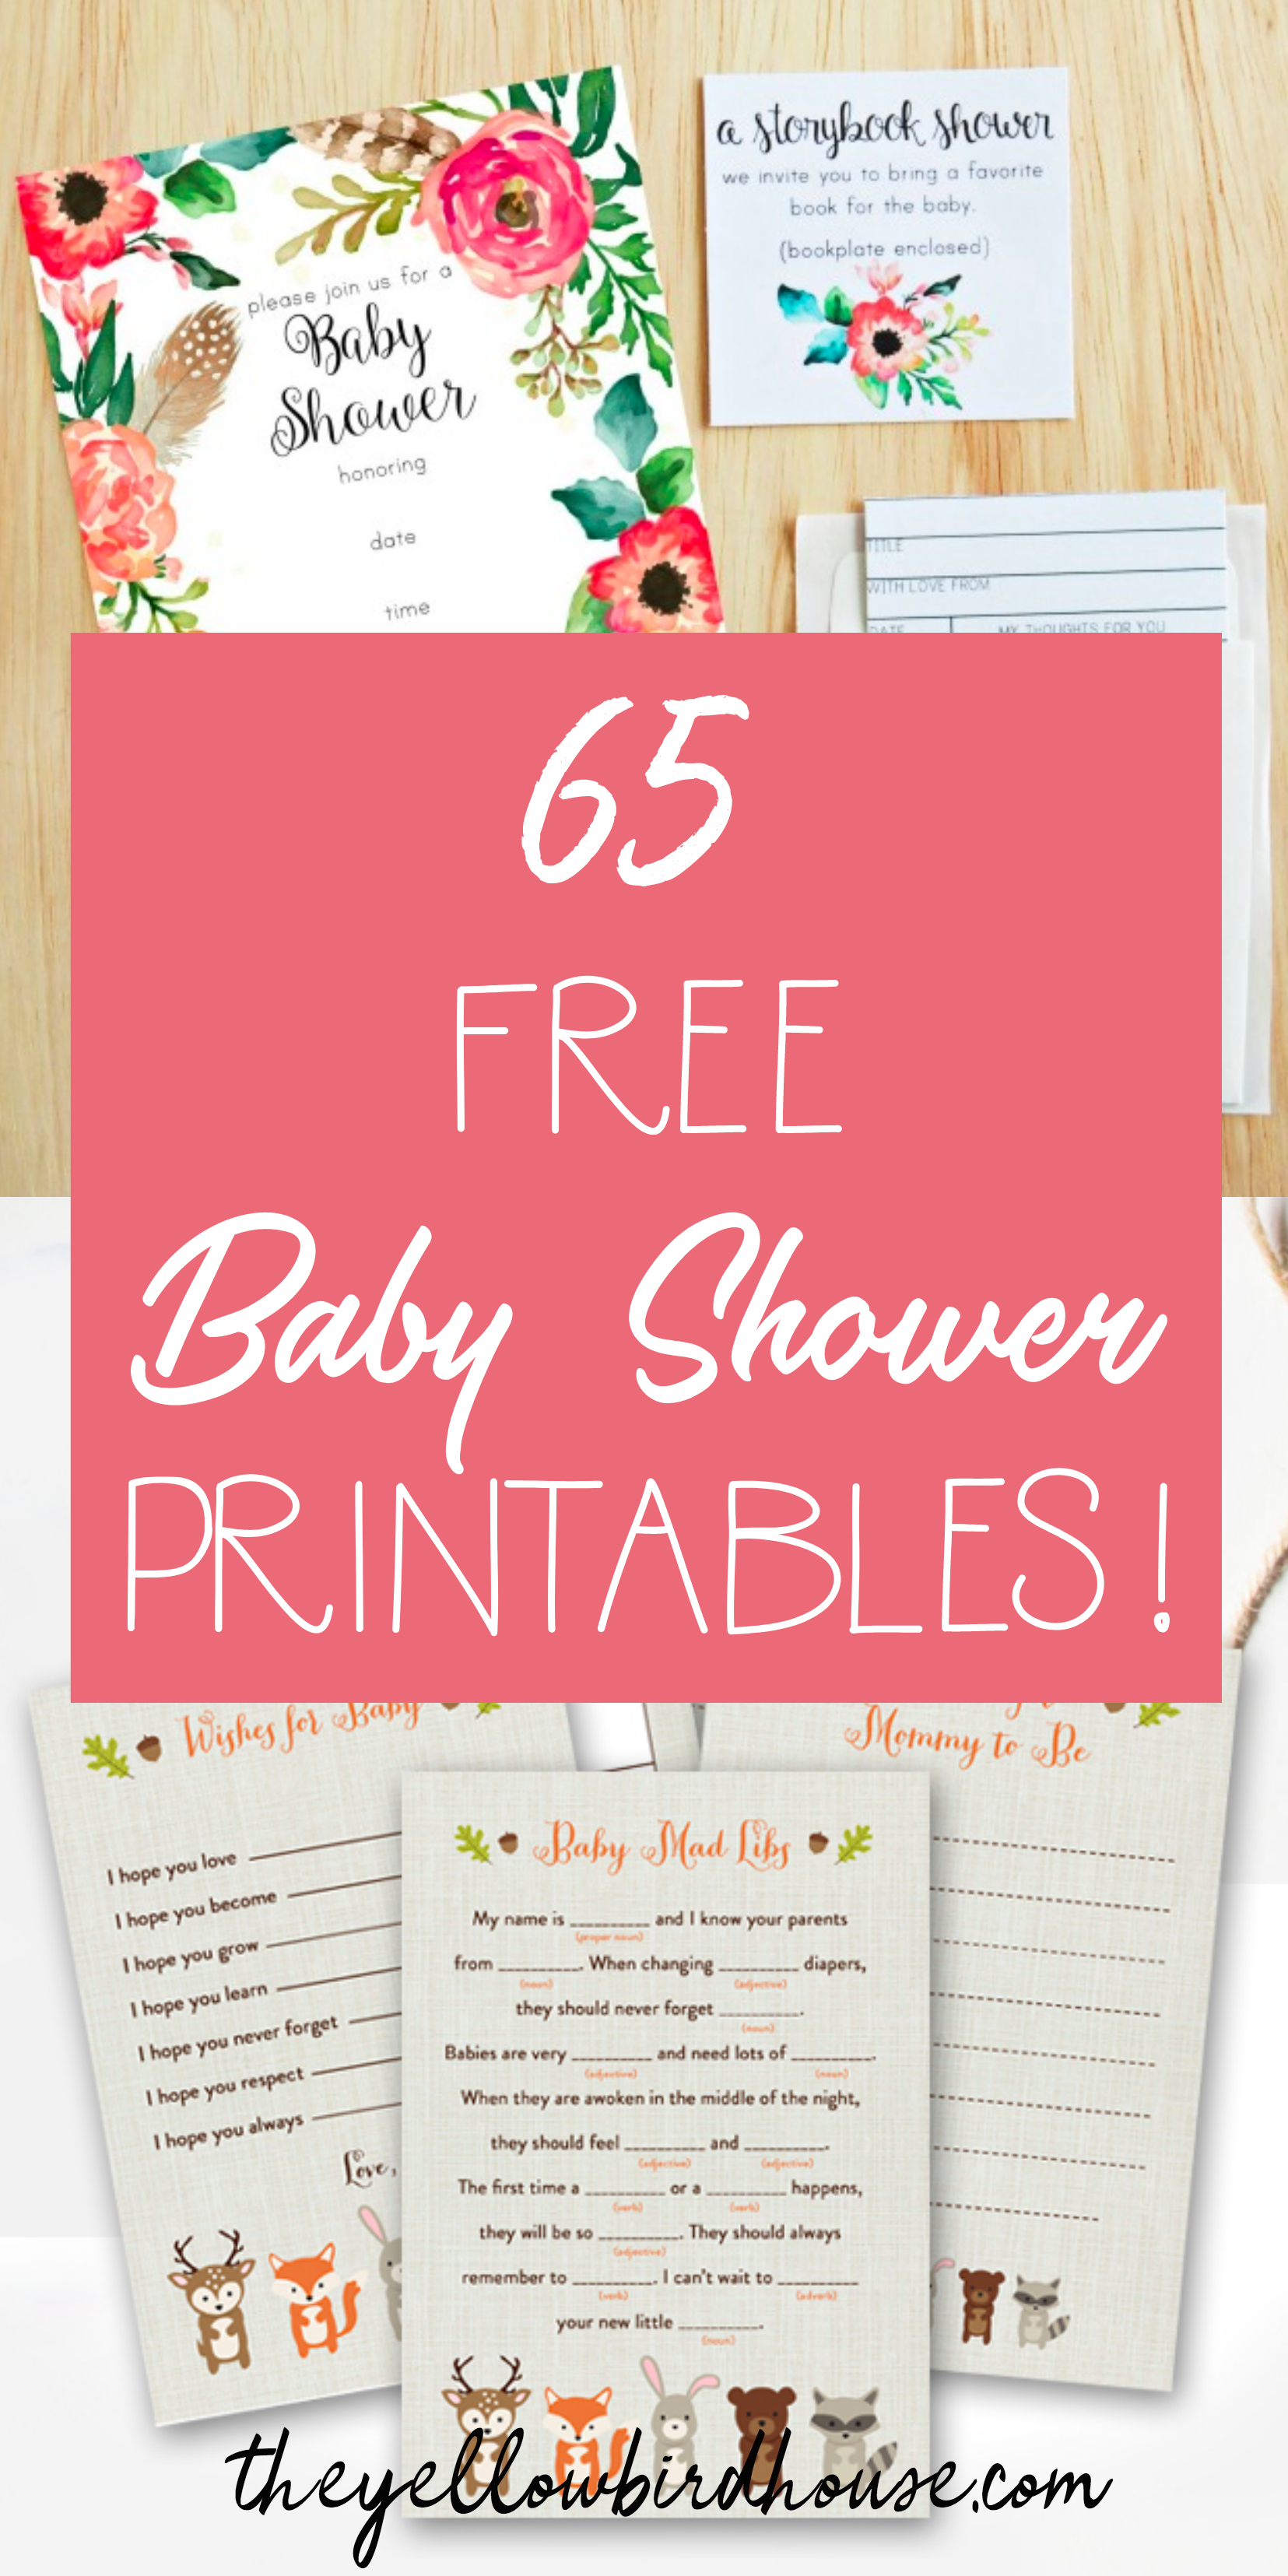 65 Free Baby Shower Printables For An Adorable Party - Free Printable Advice Cards For Baby Shower Template